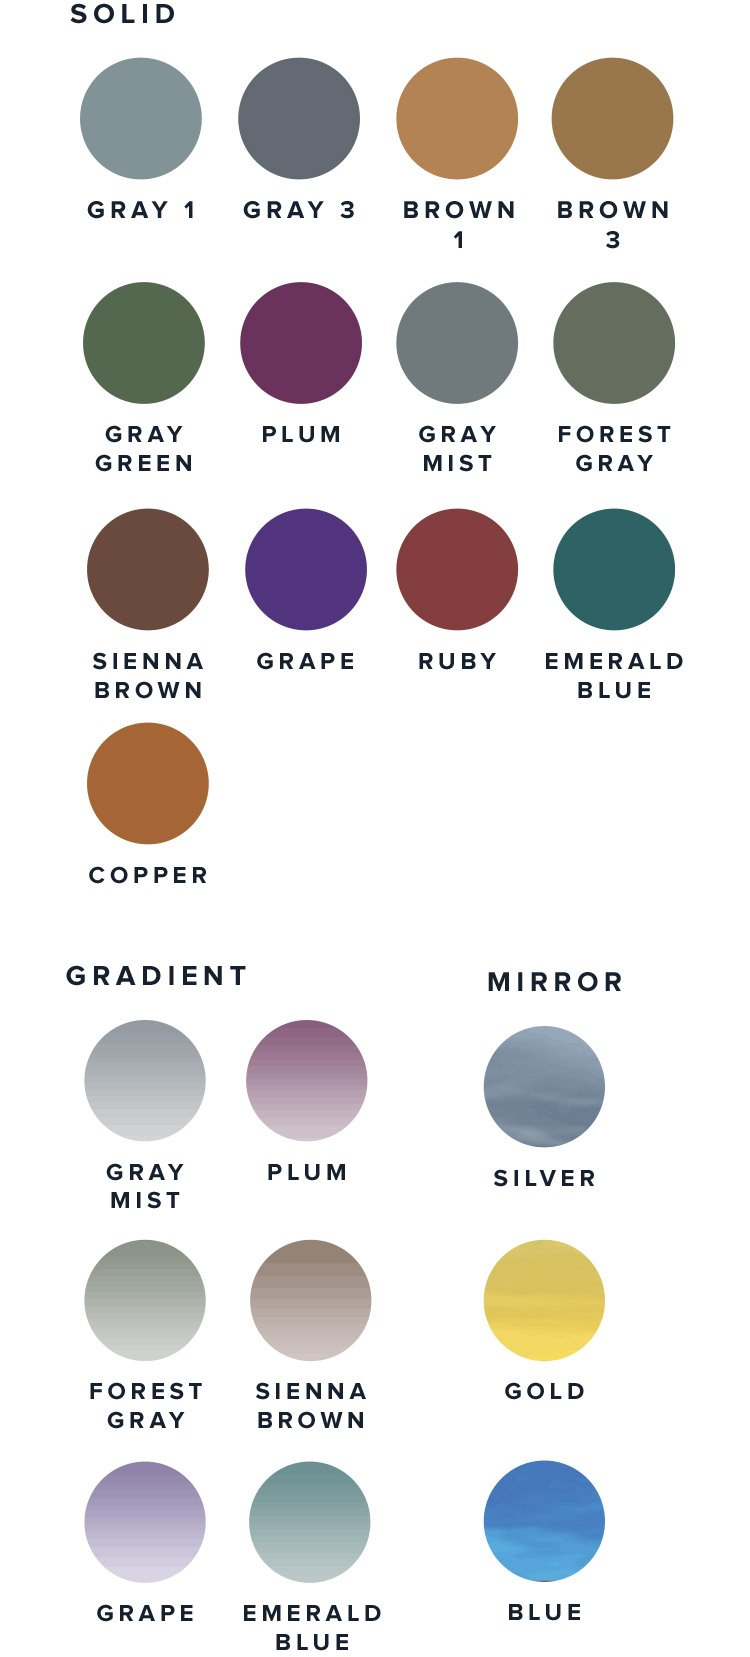 XperioUV lenses are available in the following solid lens colors: Gray 1, Gray 2, Brown 1, Brown 2, Gray Green, Plum, Gray Mist, Forest Gray, Sienna Brown, Grape, Ruby, Emerald Blue, Copper. Gradient lense colors: Gray Mist, Plum, Forest Gray, Sienna Brown, Grape, Emeral Blue. Mirrored lens colors: Silver, Gold, Blue.